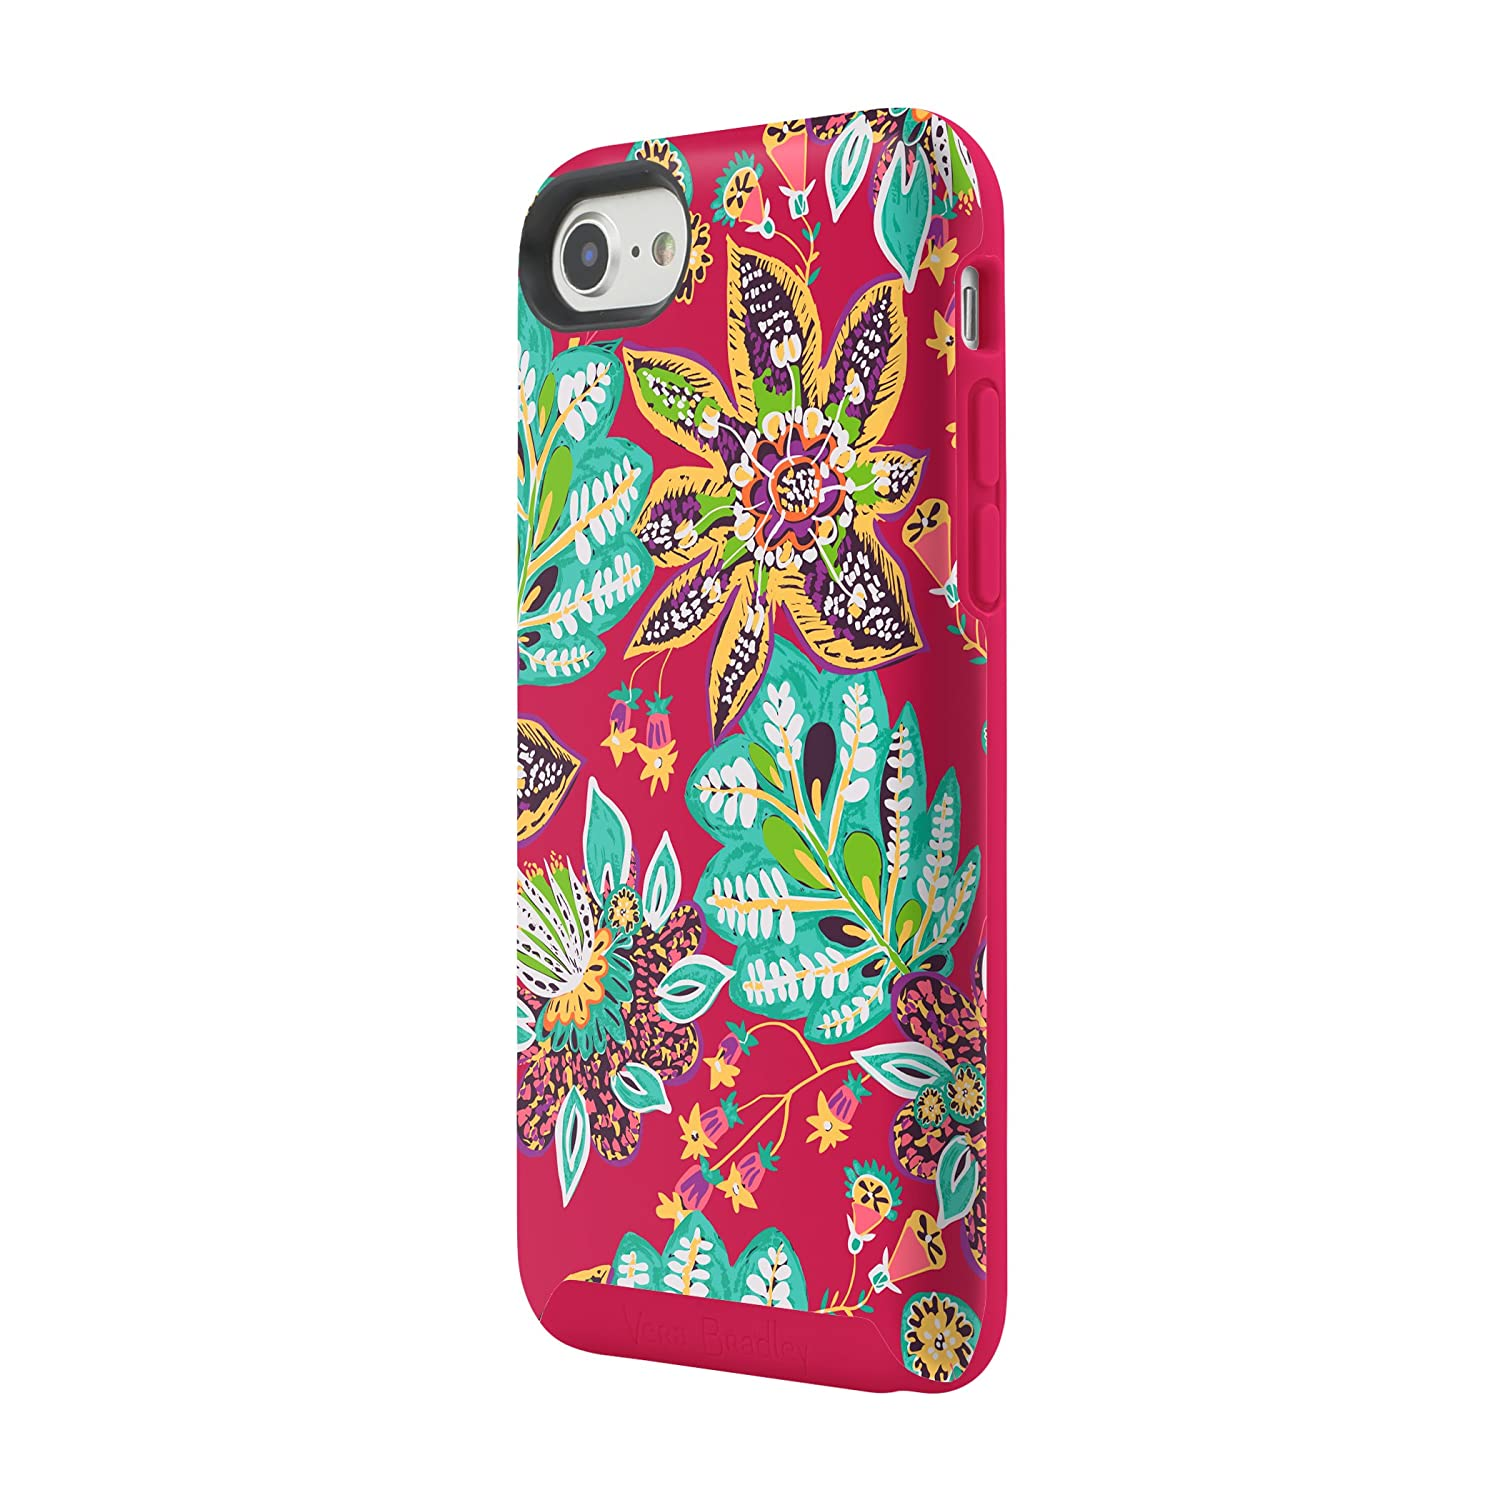 best service 2199a d3ae2 Vera Bradley Cell Phone Case for iPhone 7/6/6s - Rumba Floral Multi/Red